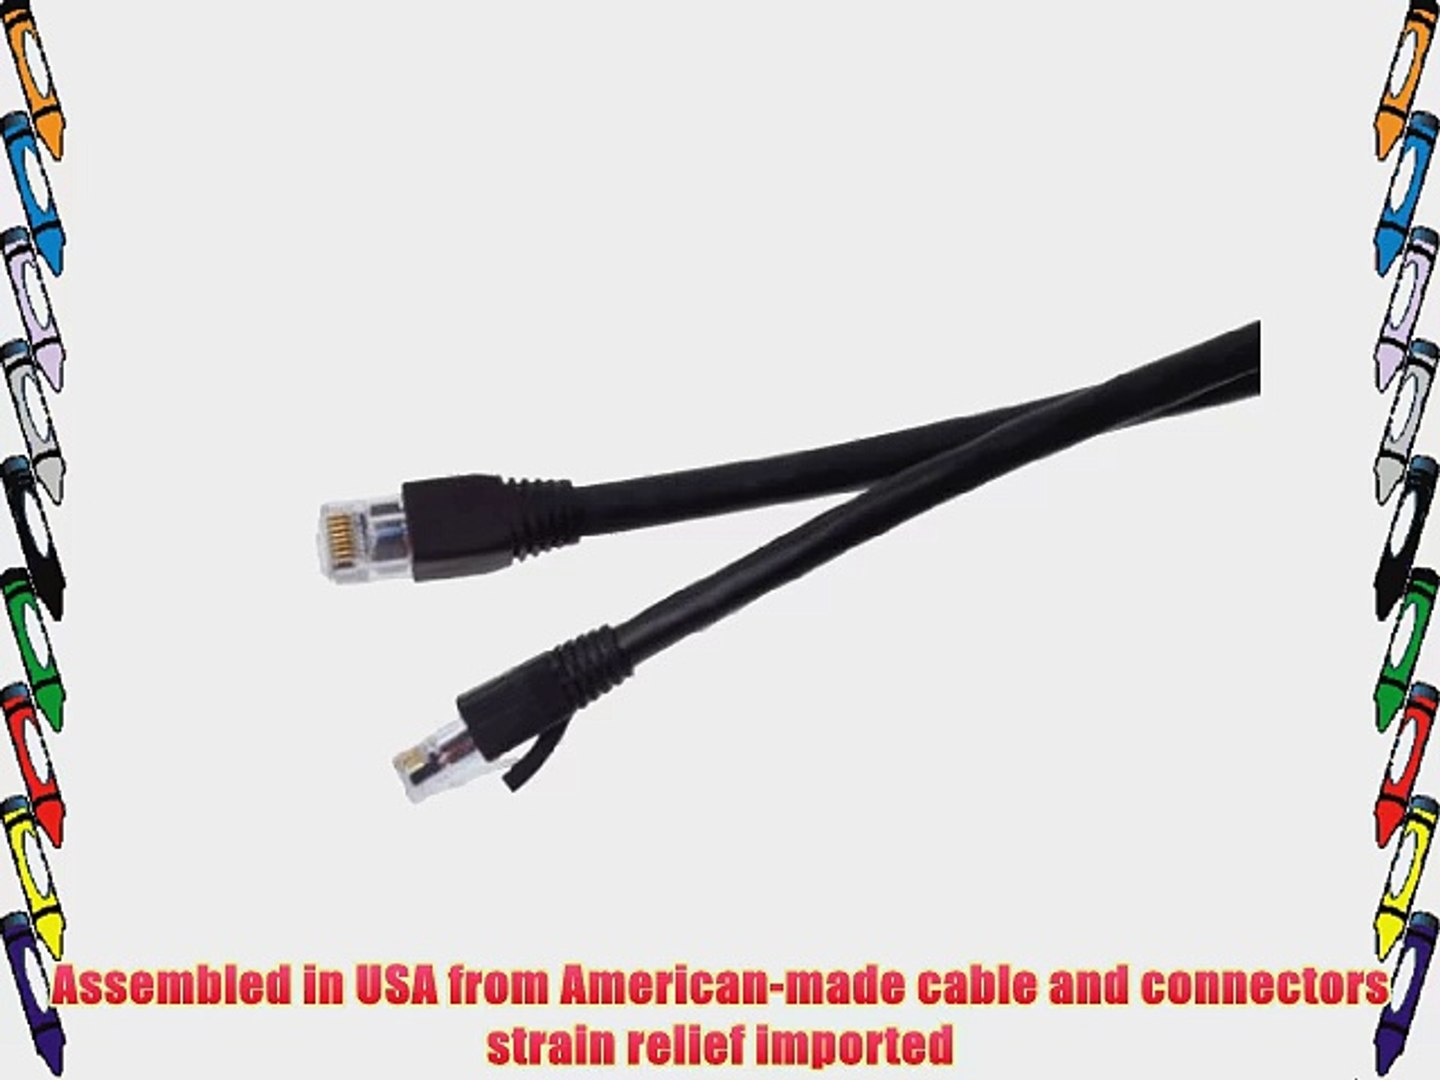 Certified 50 foot Black Cat 6A Patch Cable Assembled in USA Blue Jeans Cable brand with Test